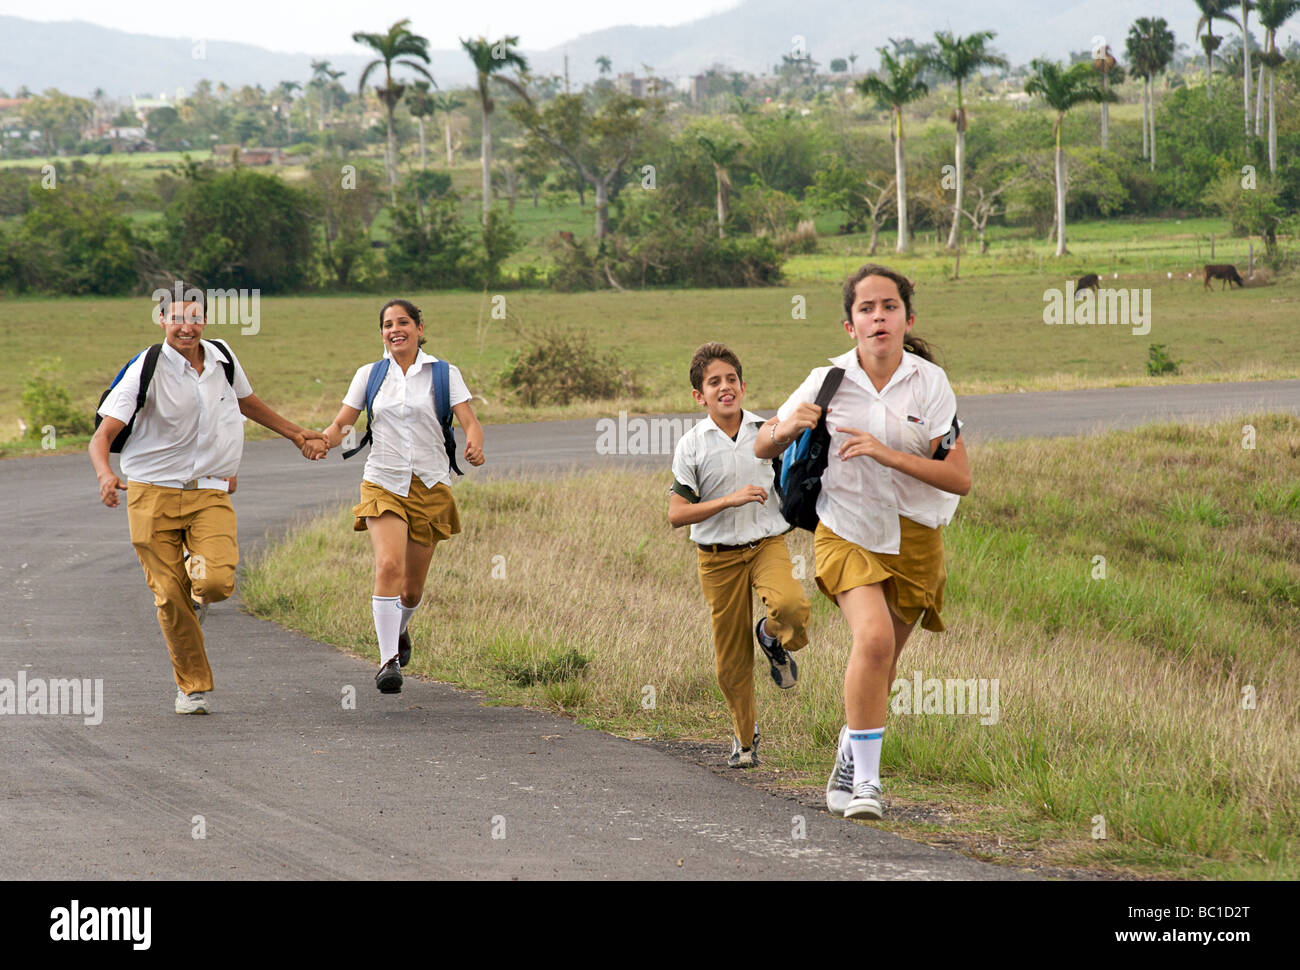 Schoolchildren running along the road, Pinar del Rio, Cuba Stock Photo